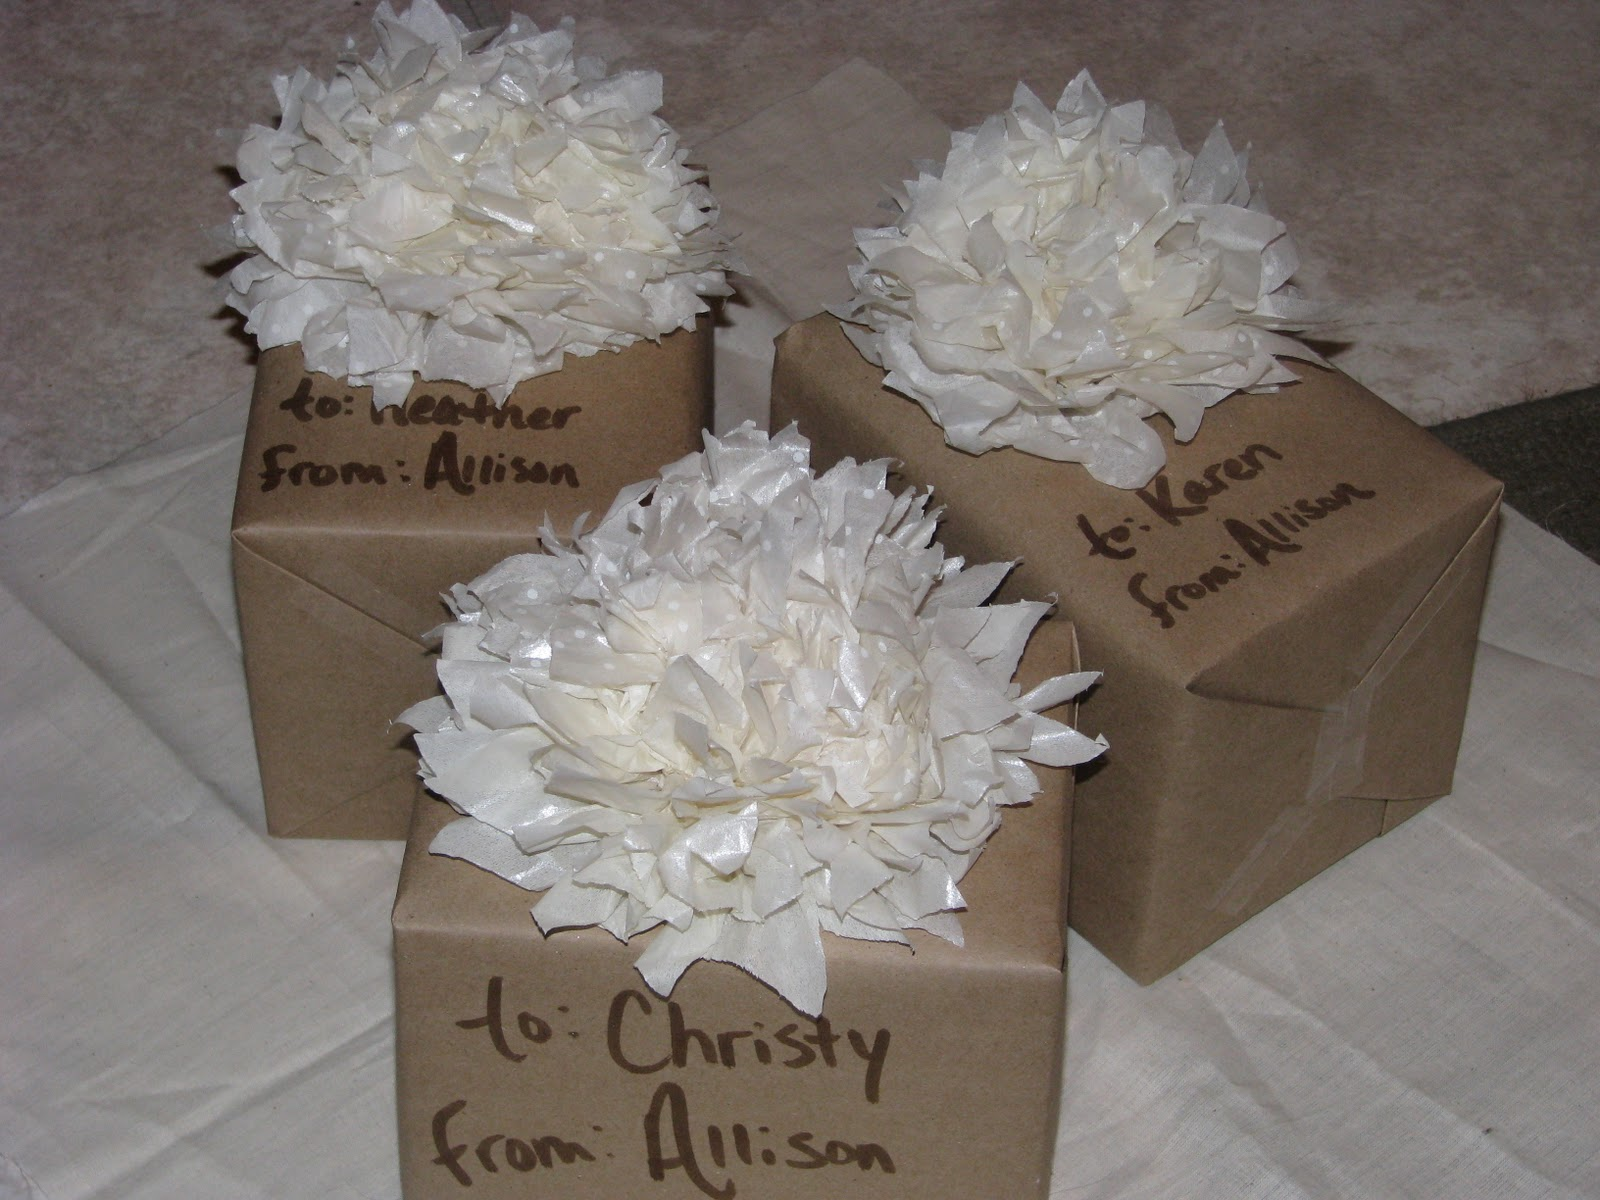 wedding shower gift ideas wedding gifts for bride Wedding Shower Hostess Gift Ideas Wedding Shower Hostess Gift Ideas